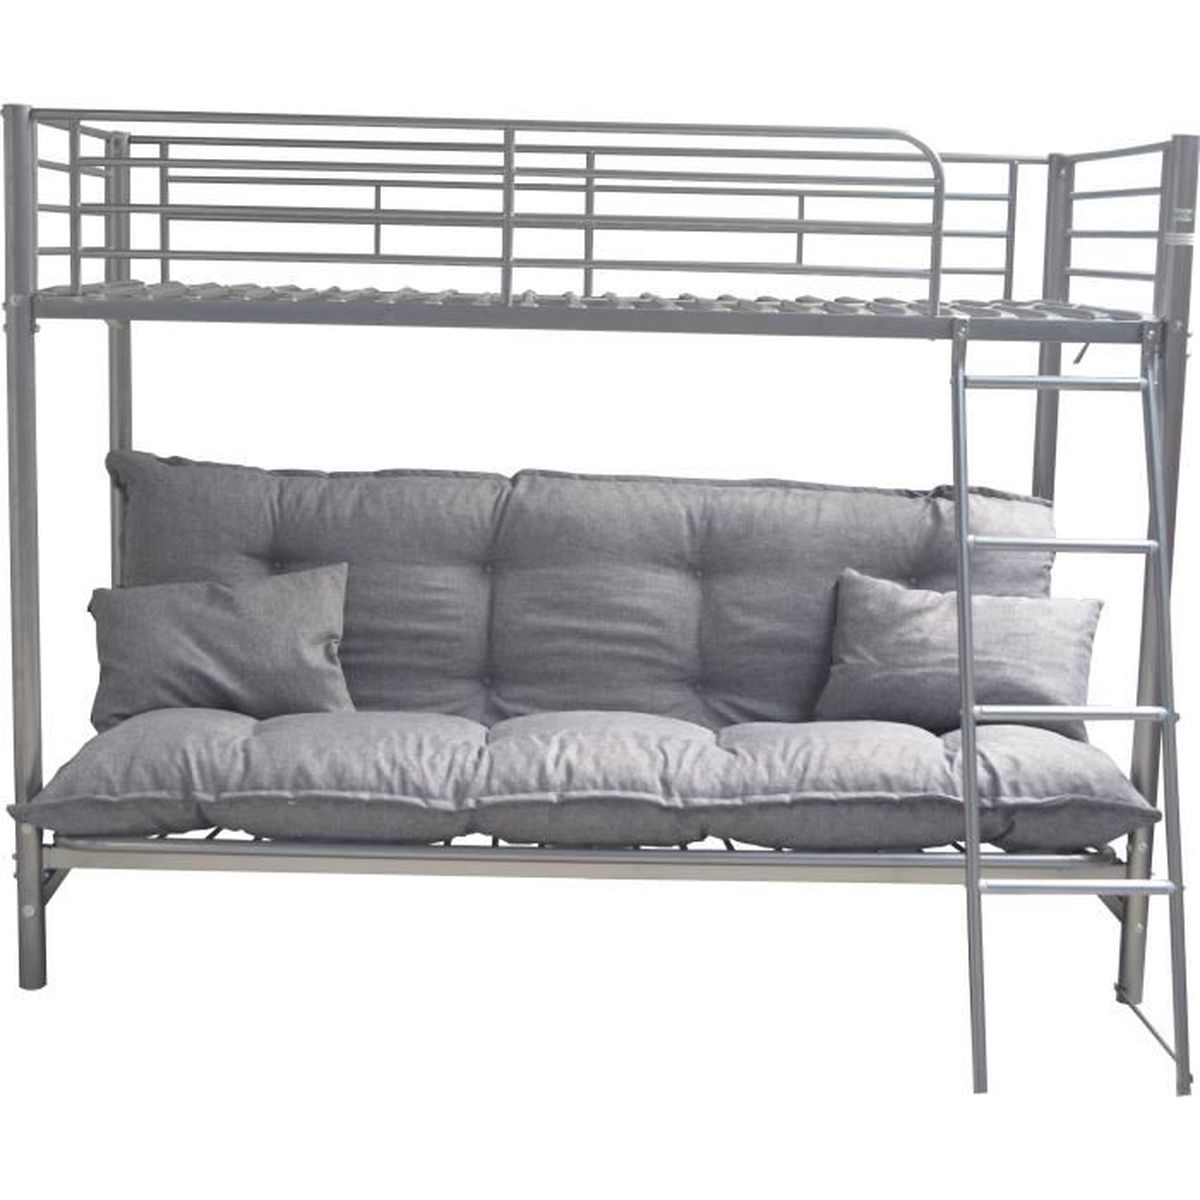 price factory lit superpos louis futon gris sommier coussin bas inclus couchage 90x200 cm. Black Bedroom Furniture Sets. Home Design Ideas